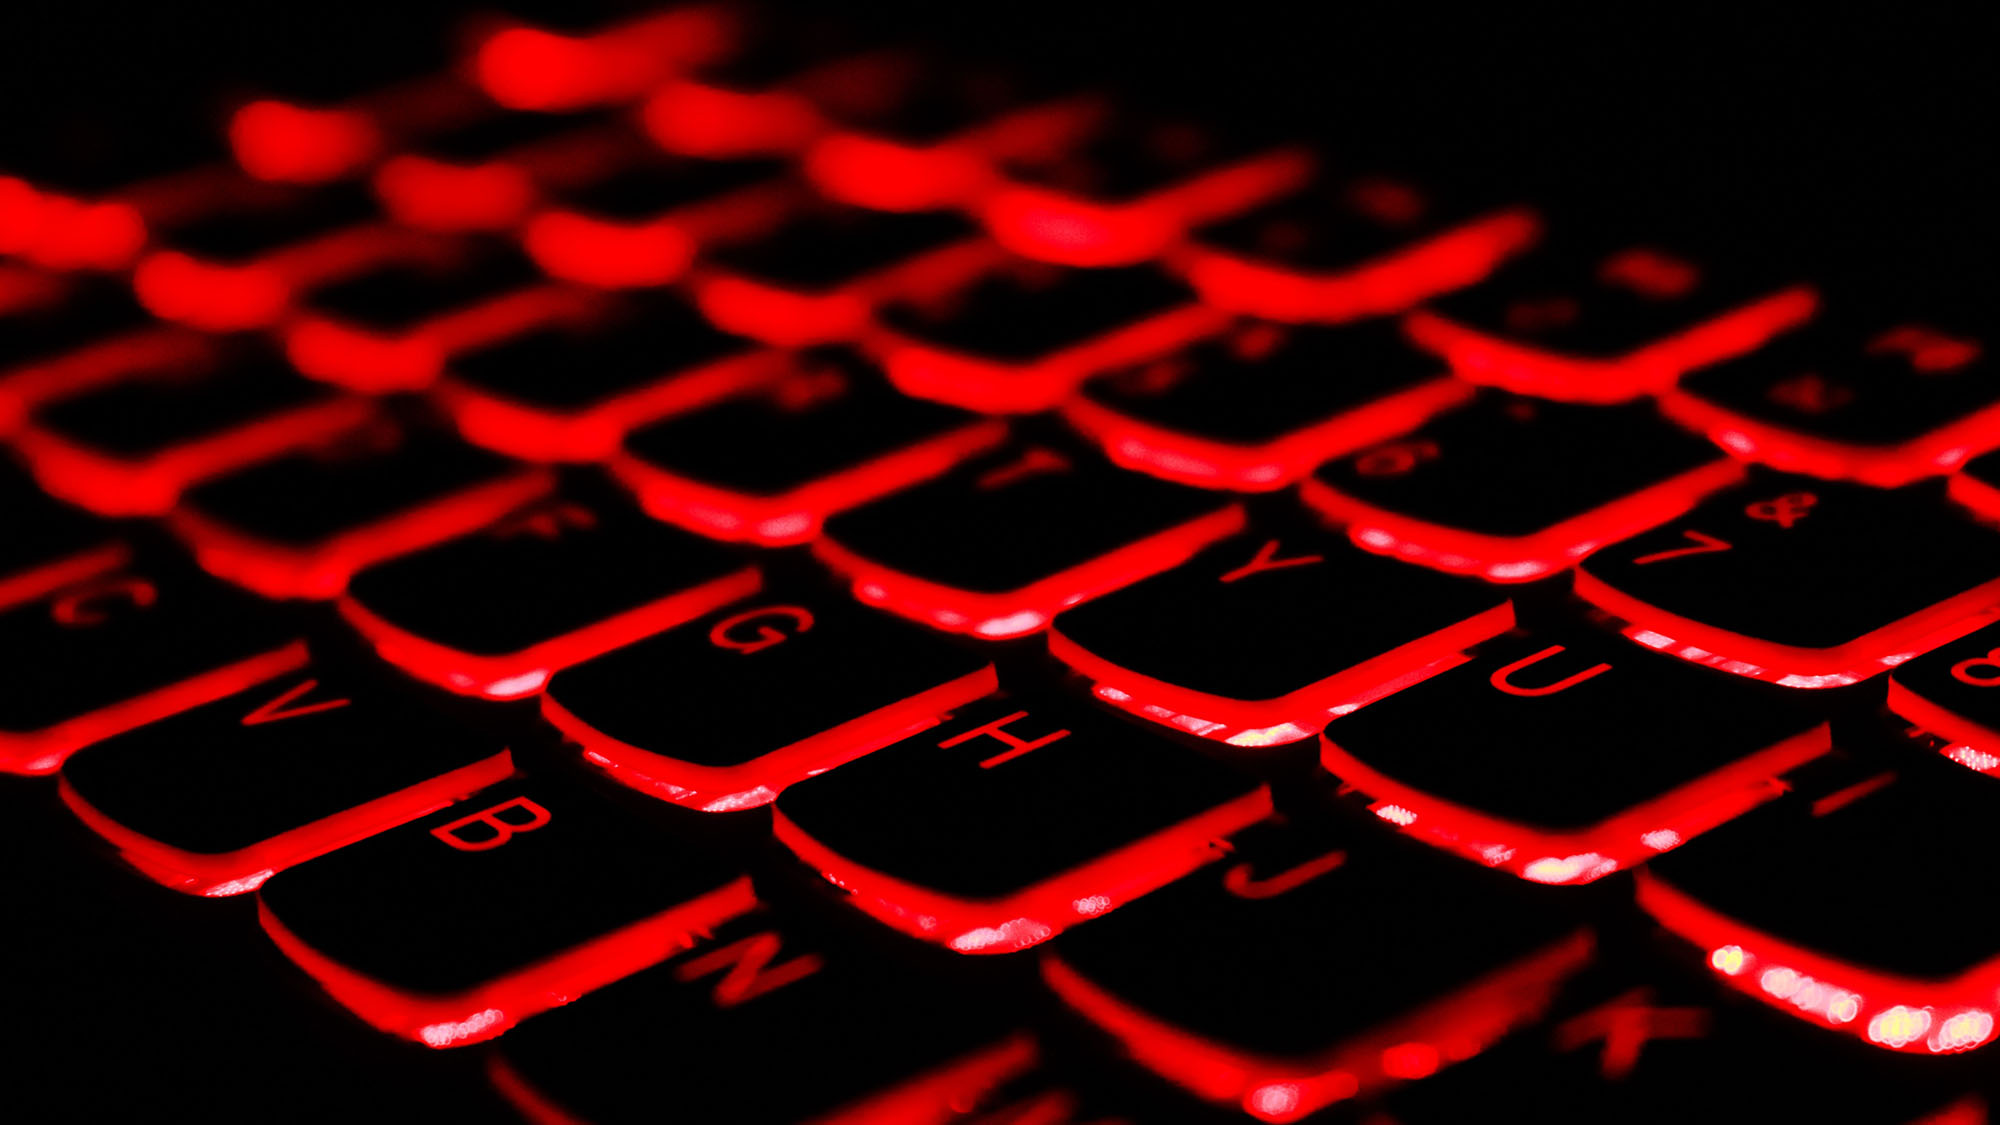 An image of a computer keyboard in the dark, with a red back light.